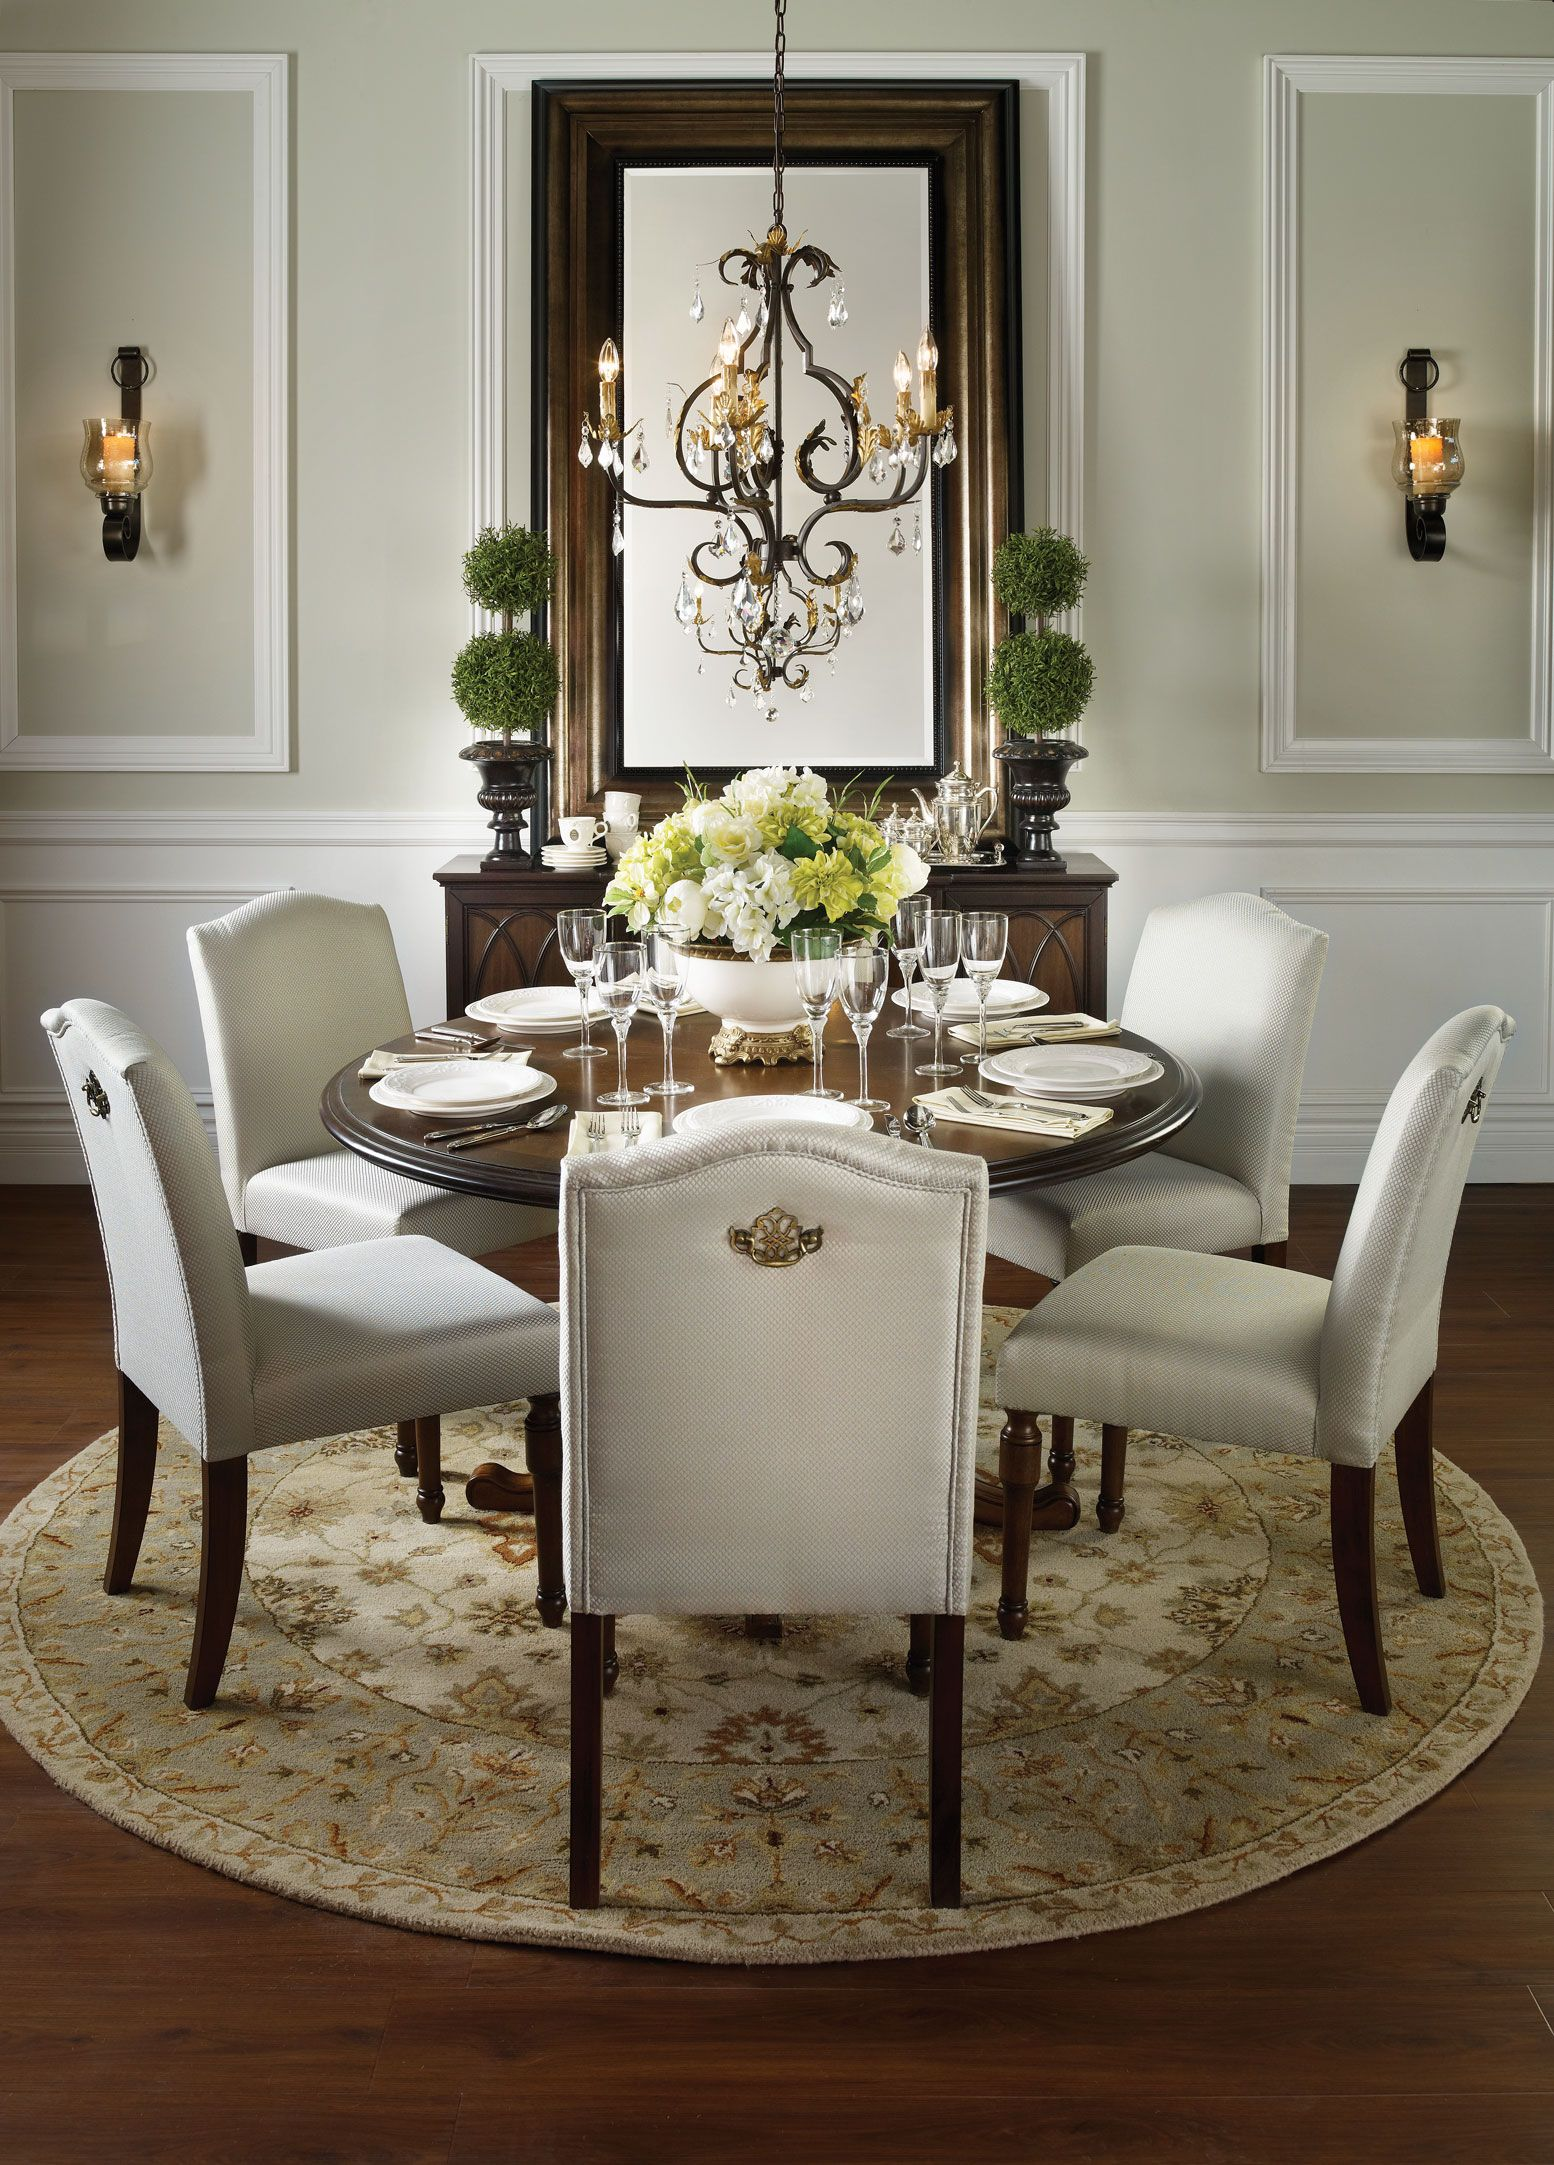 Cornwall Table | Bombay Canada | home decor | Pinterest | Room ...